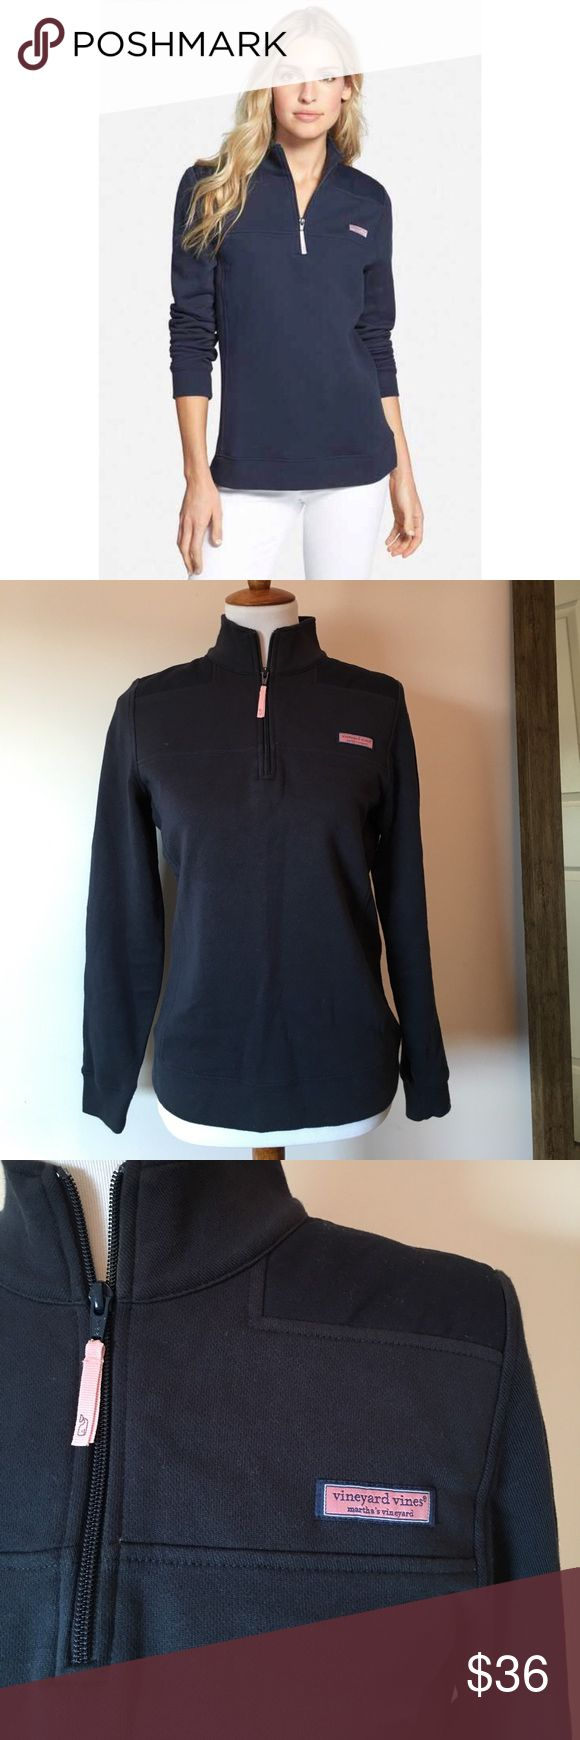 Navy blue and pink VINEYARD VINES pullover Navy blue and pink vineyard vines pullover sweatshirt. Size small. In excellent used condition. Vineyard Vines Tops Sweatshirts & Hoodies